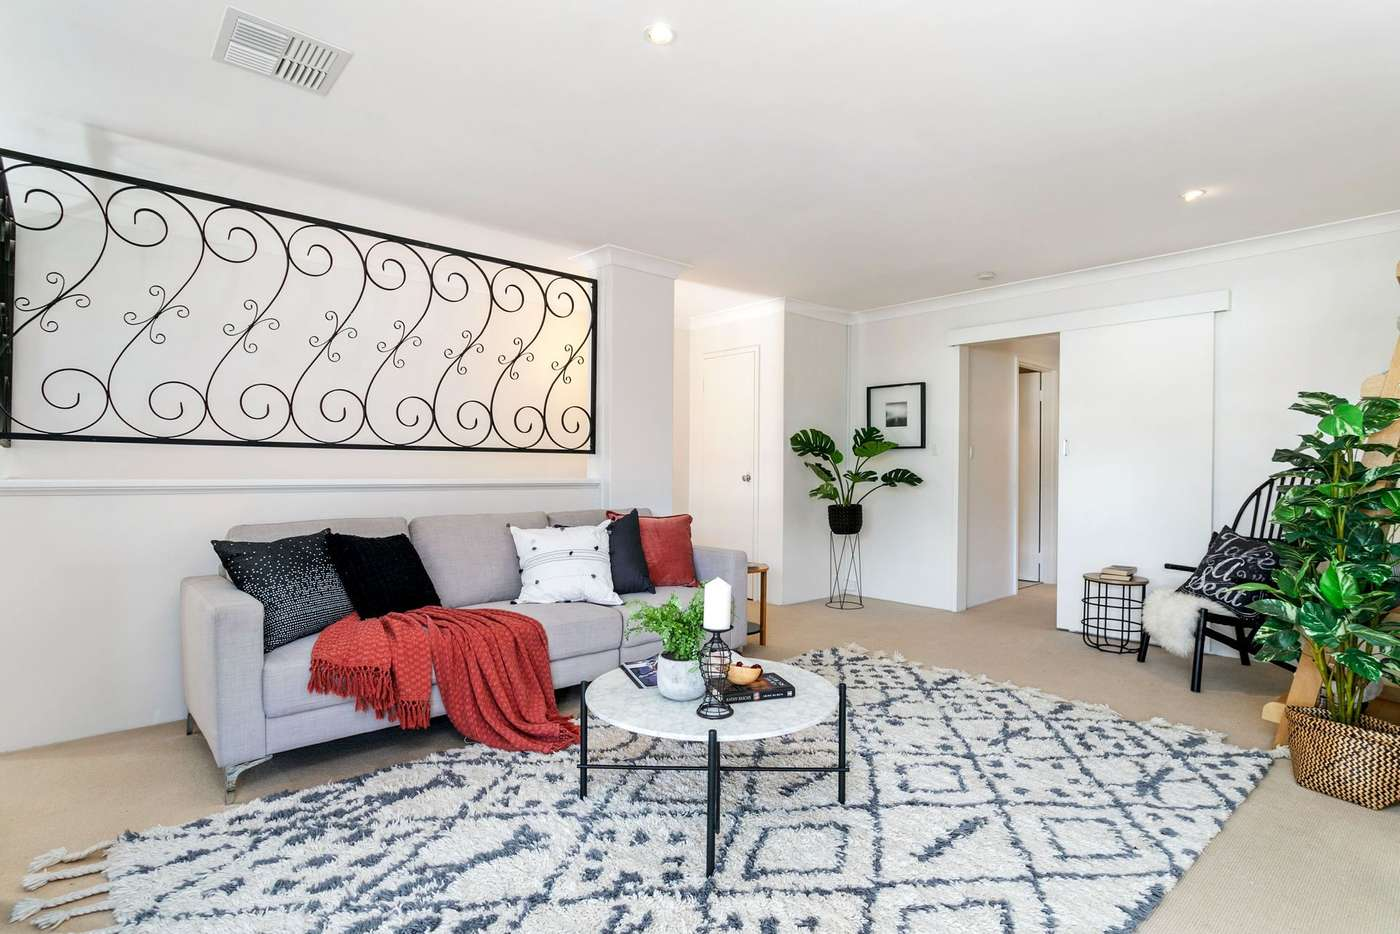 Fifth view of Homely apartment listing, 15/48 Austin Street, Shenton Park WA 6008